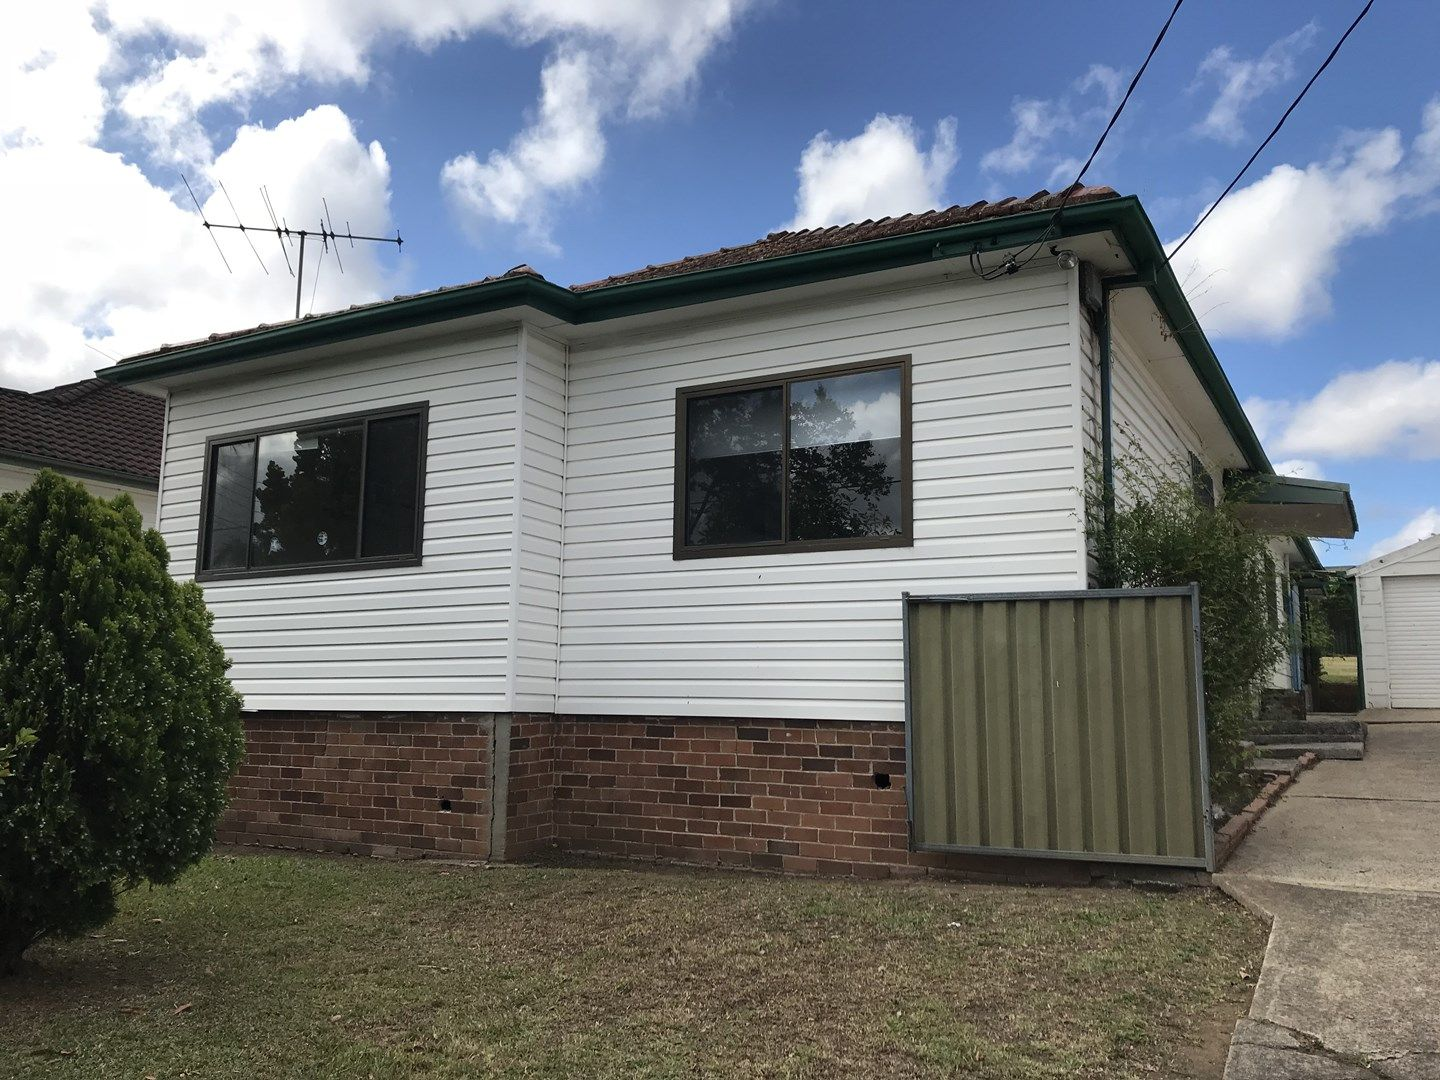 27 Mary Street, Merrylands NSW 2160, Image 0